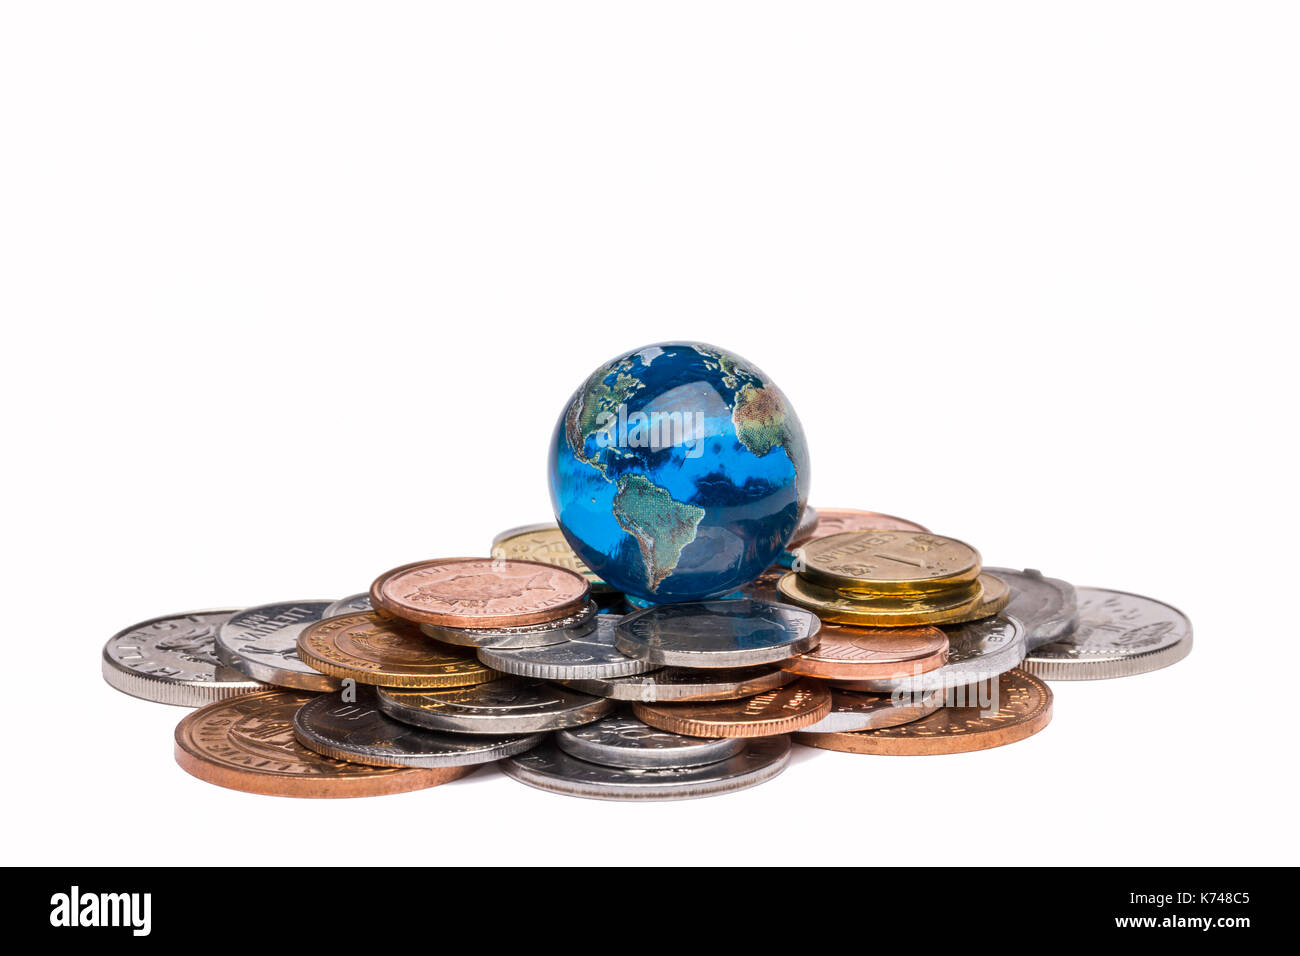 Earth Globe On Coins - Stock Image